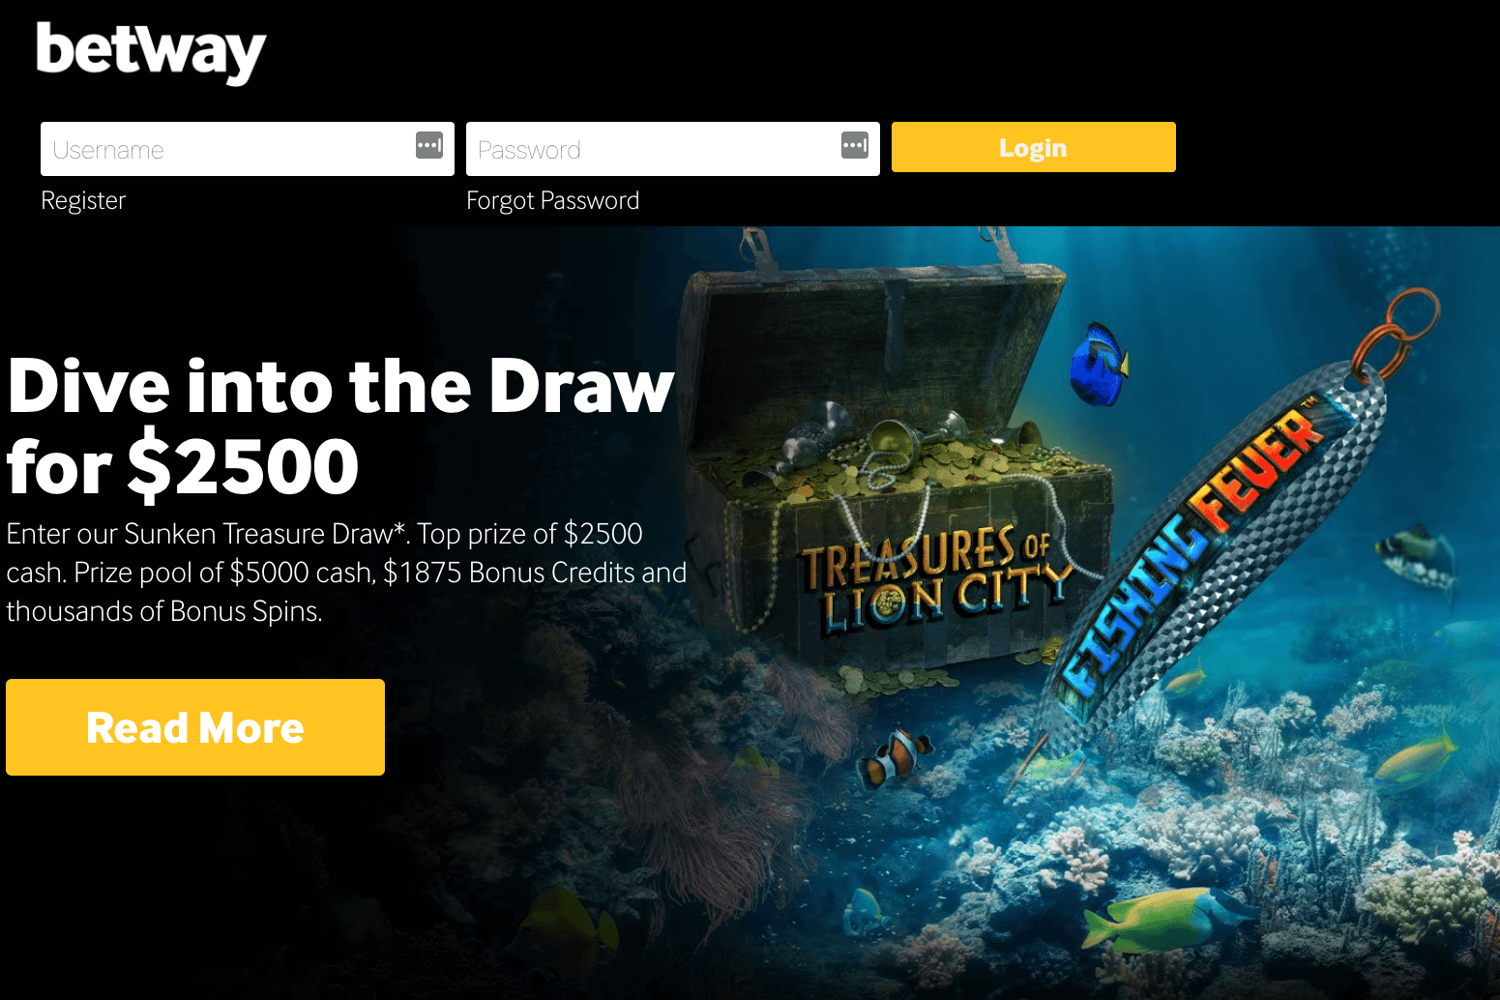 Best casino offers at Betway